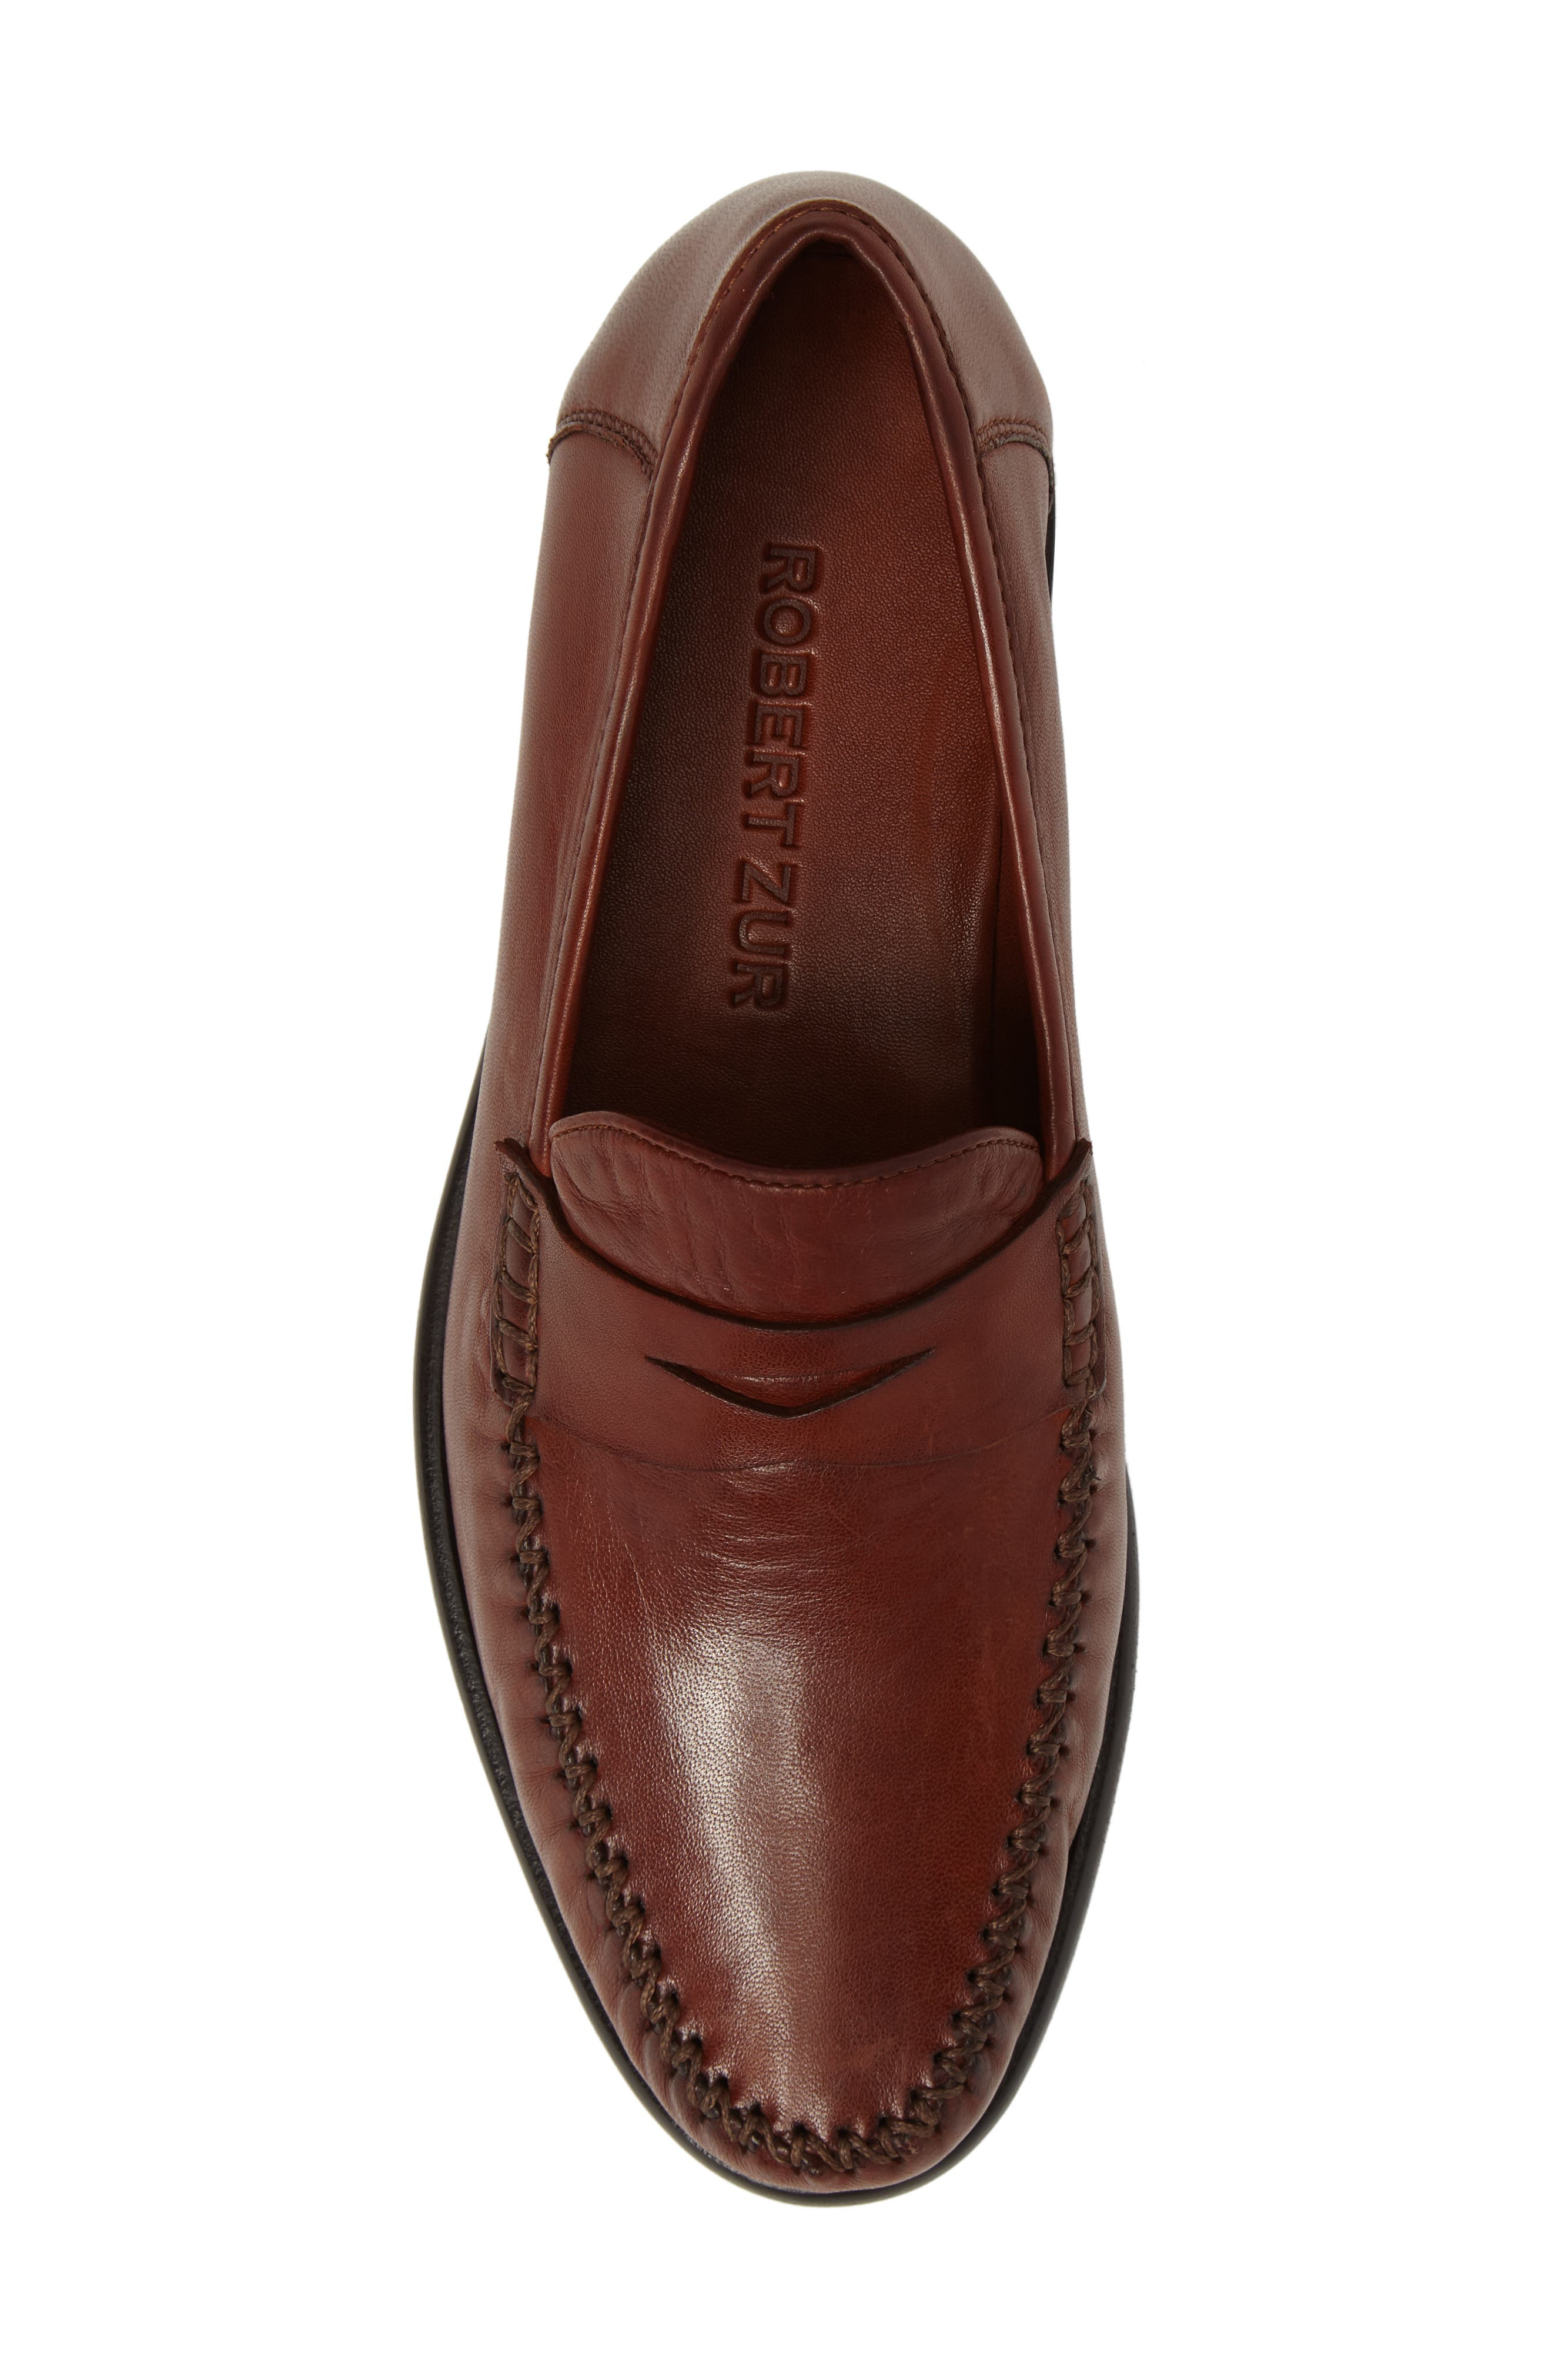 Penny Loafer,                             Alternate thumbnail 5, color,                             DARK LUGGAGE LEATHER